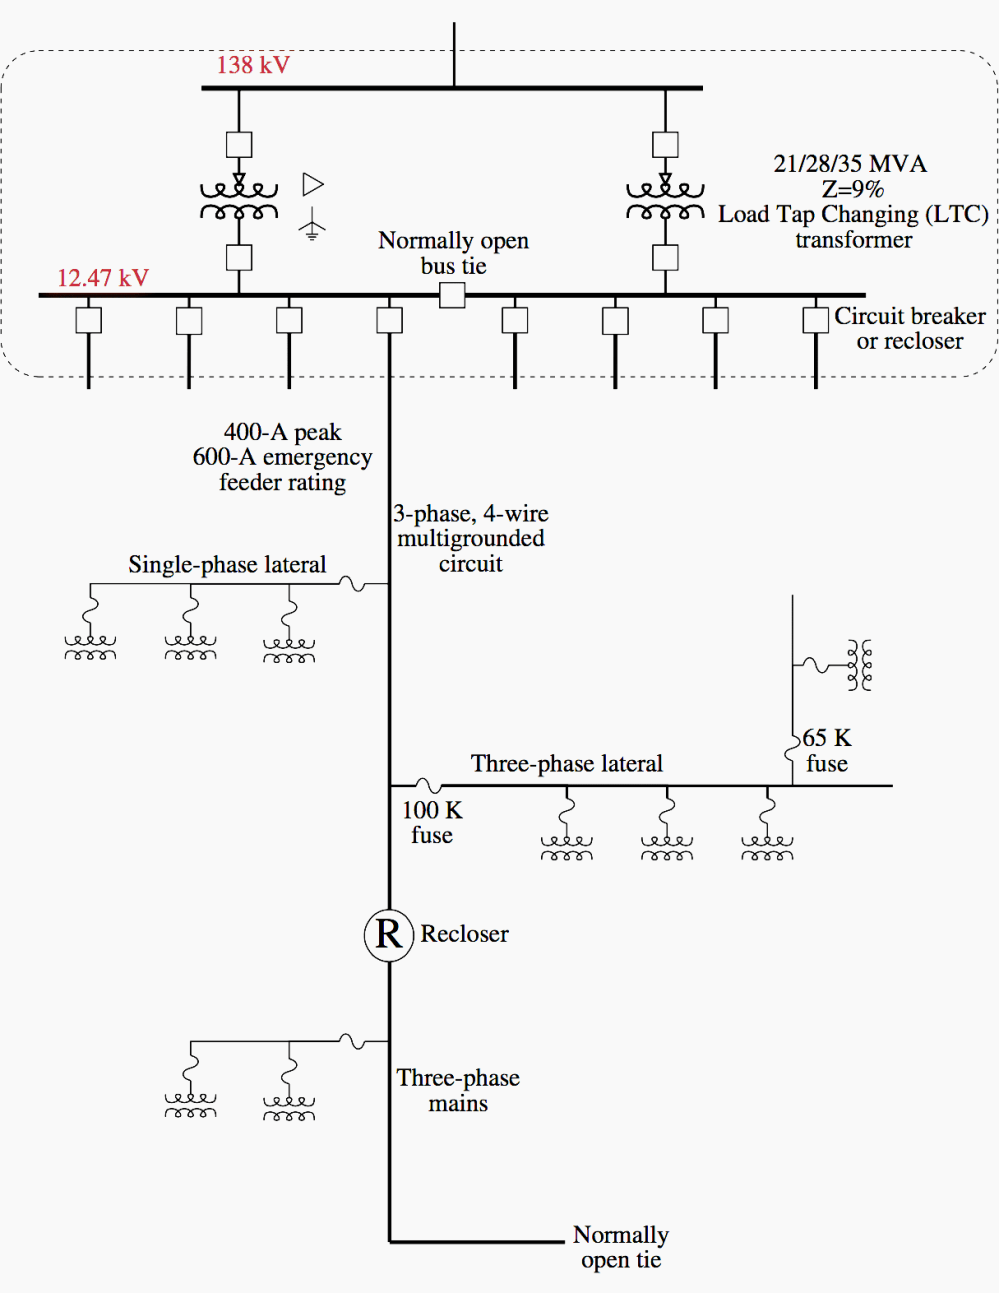 medium resolution of typical distribution substation with one of several feeders shown